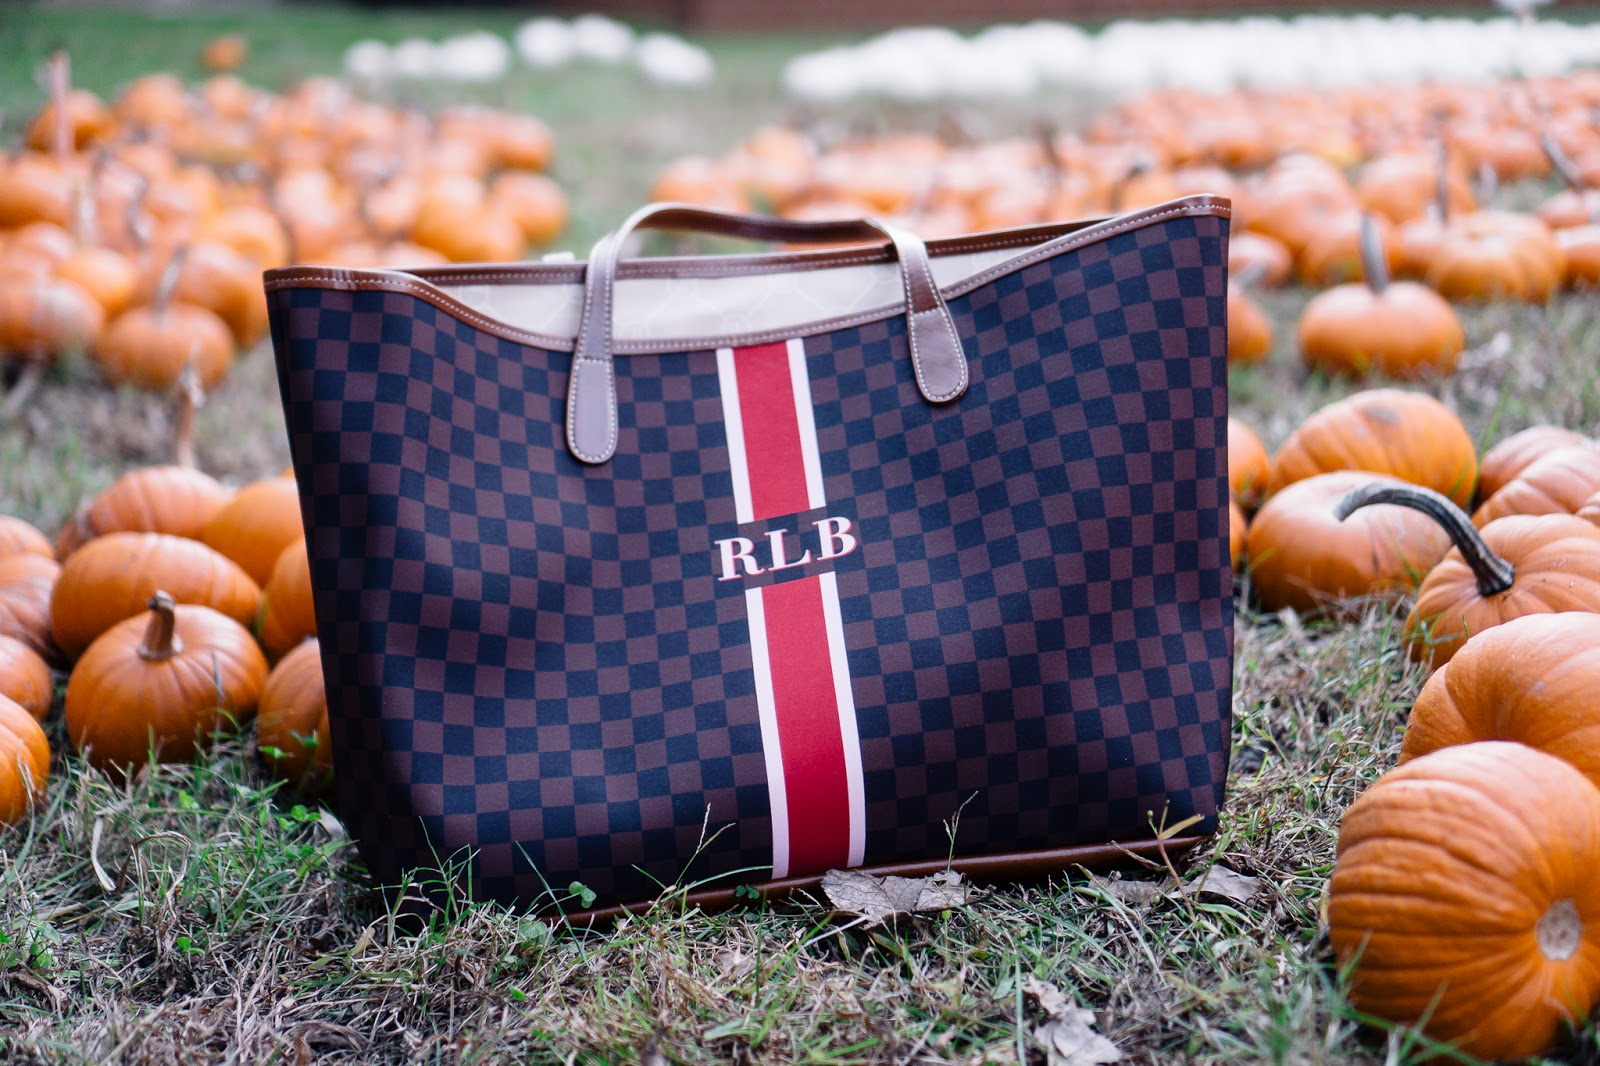 My-favorite-everyday-tote-bag-with-barrington-gifts